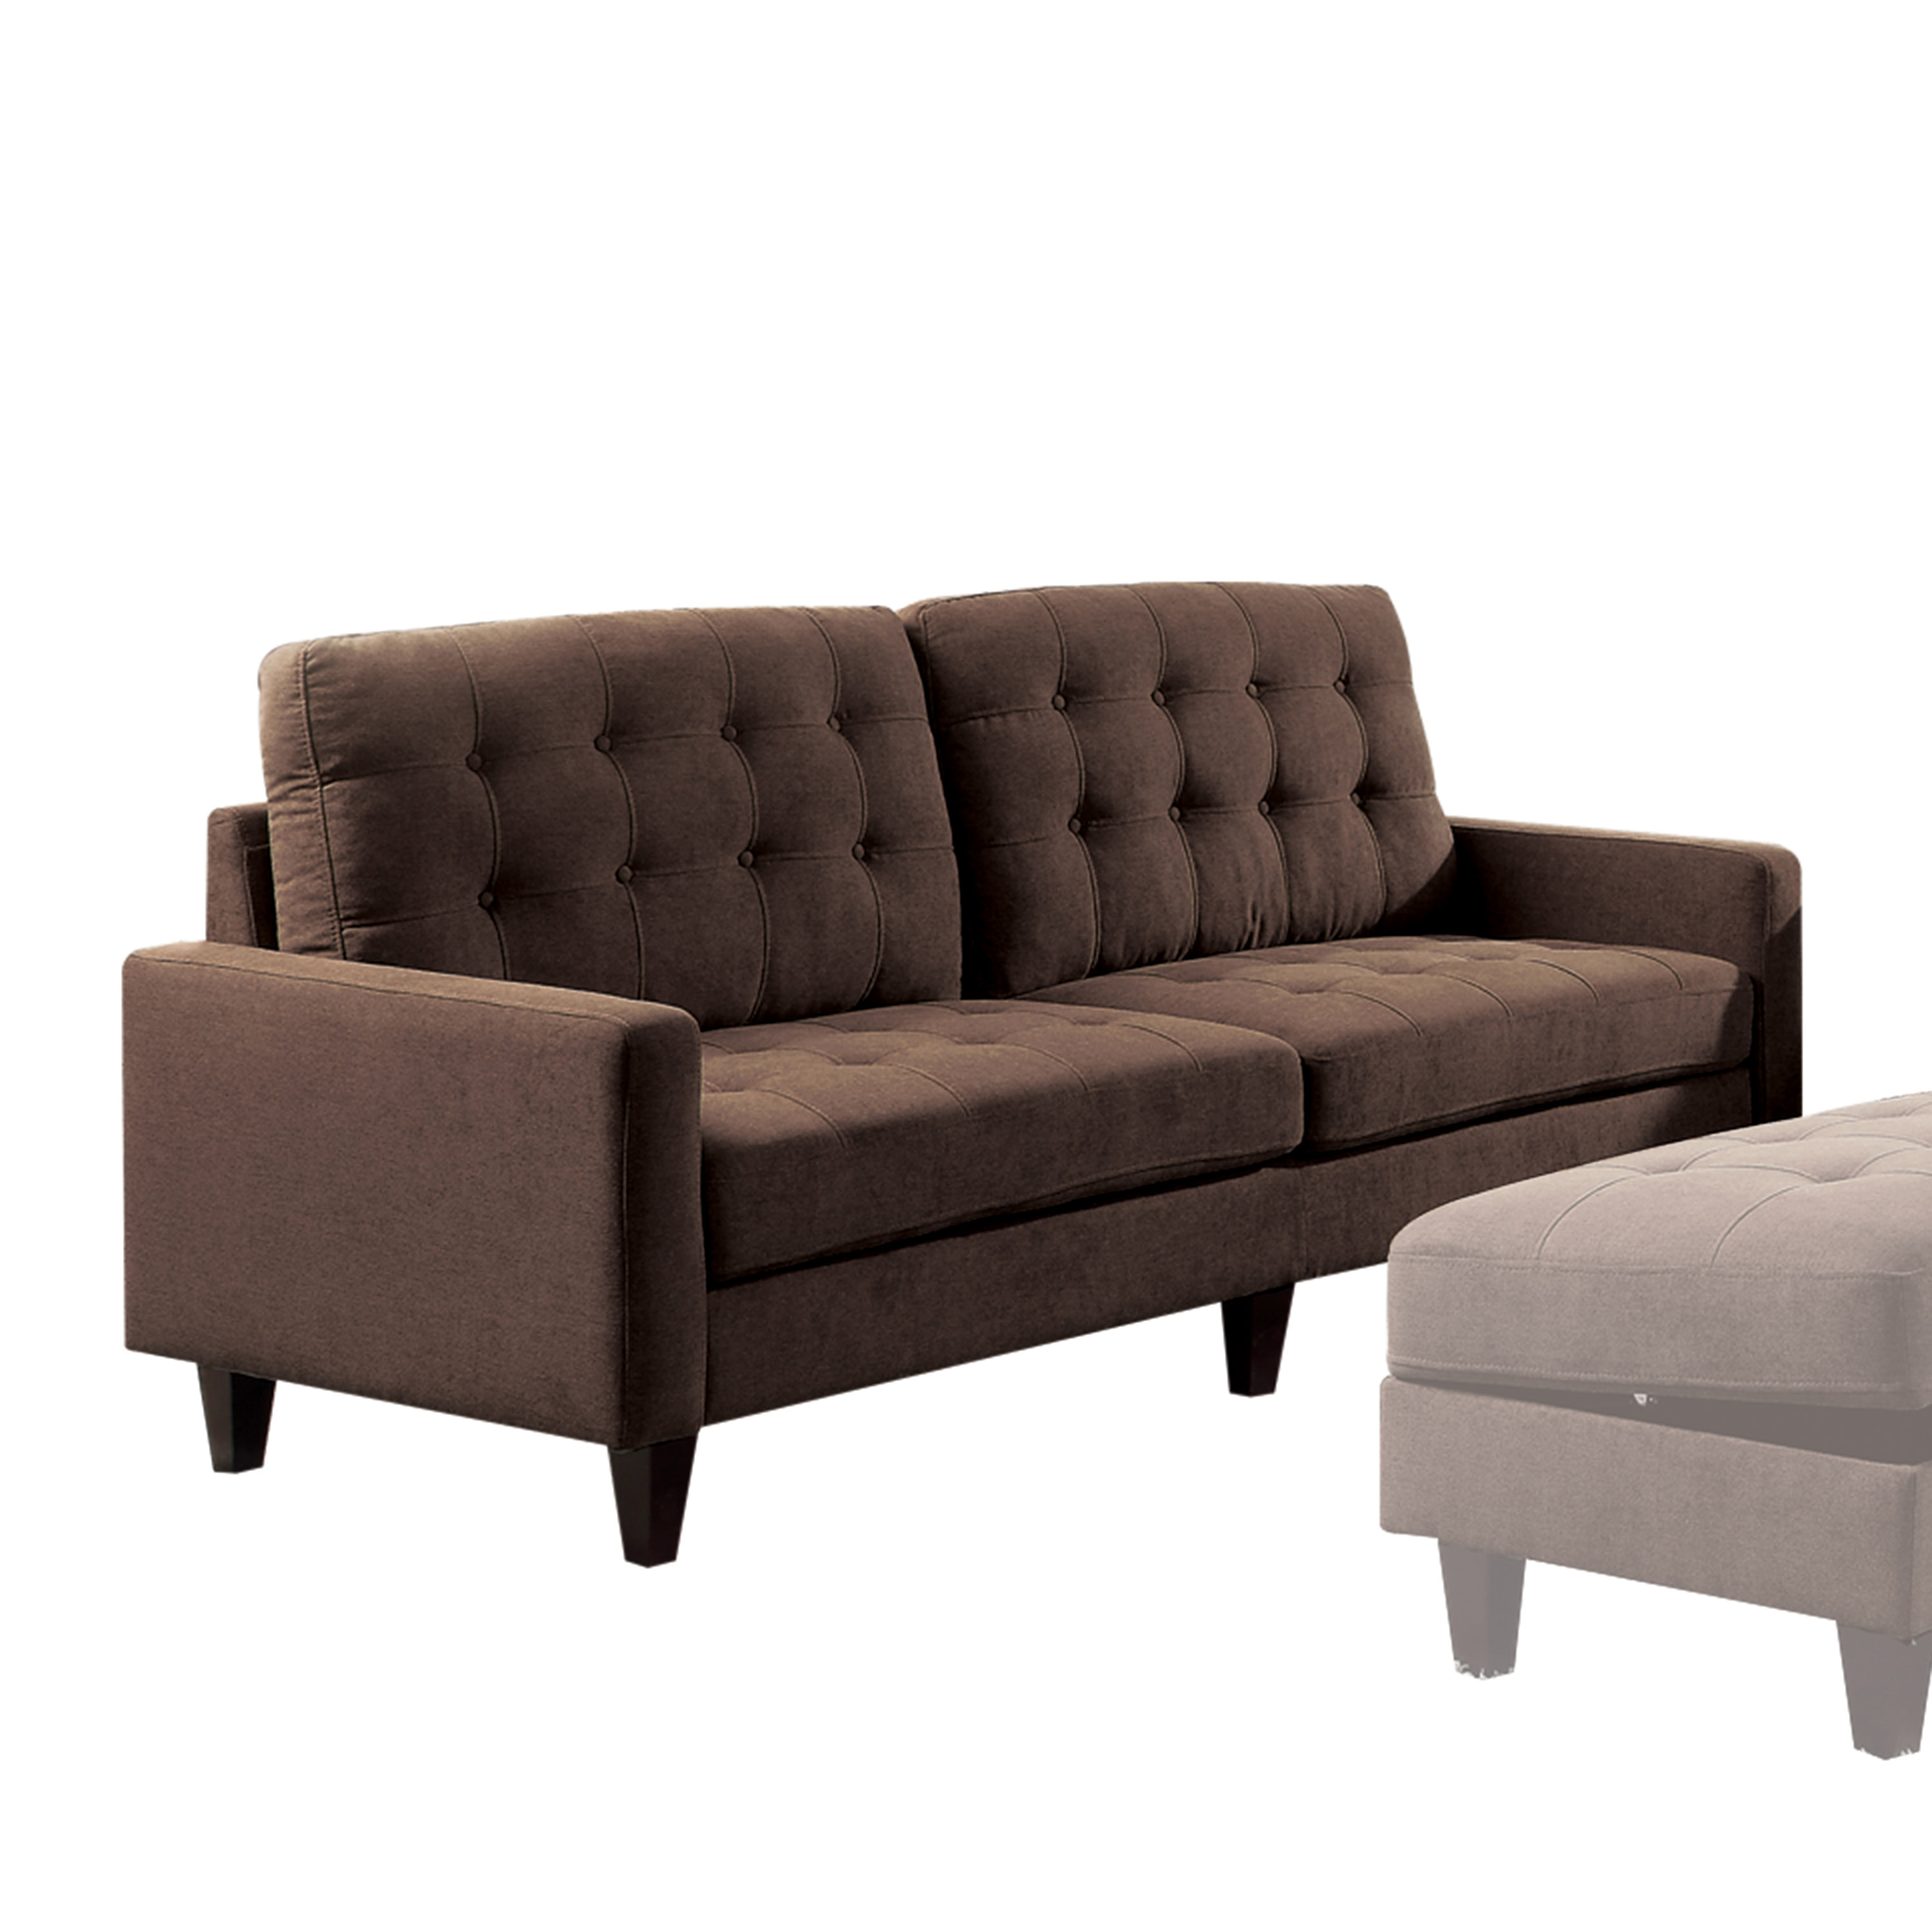 Acme Nate Memory Foam Sofa with Tufting in Chocolate Fabric